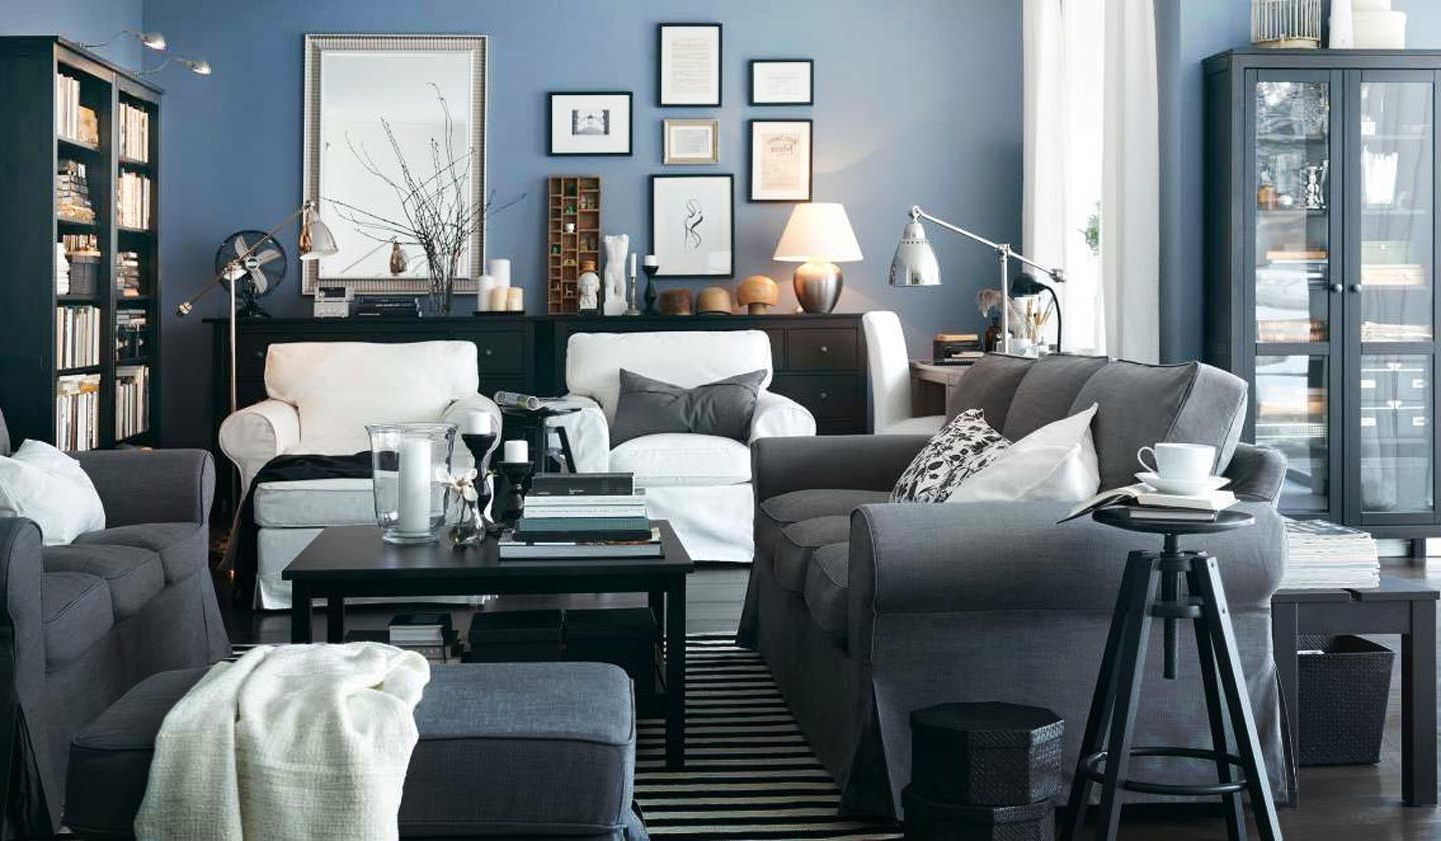 Blue Living Room Ideas gray and blue living room decor | interior design ideas